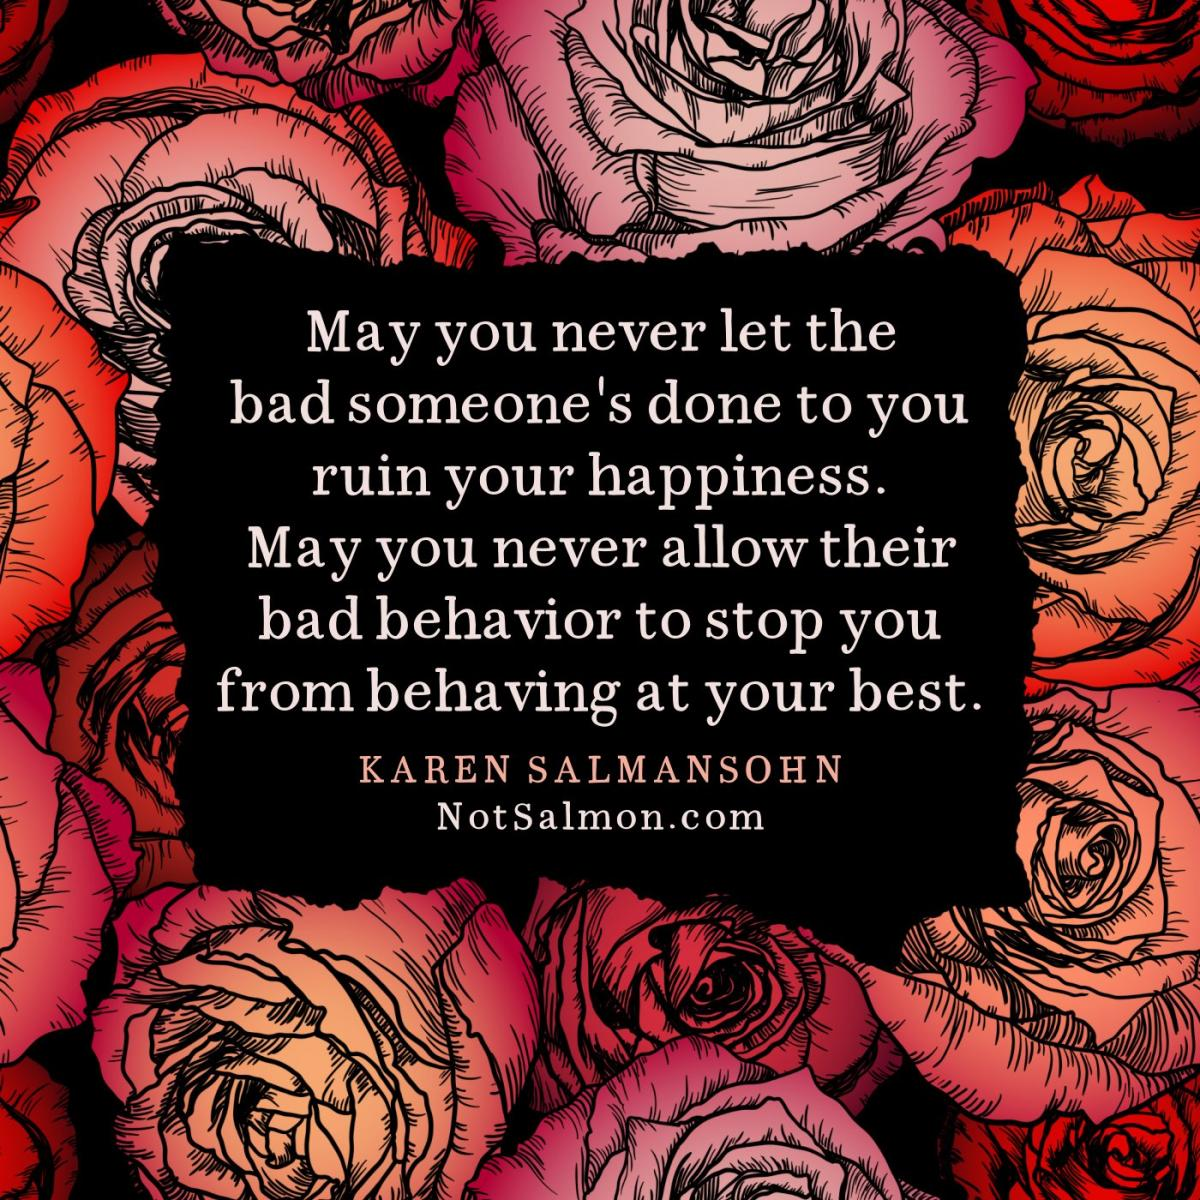 bad person stop you from behaving at your best